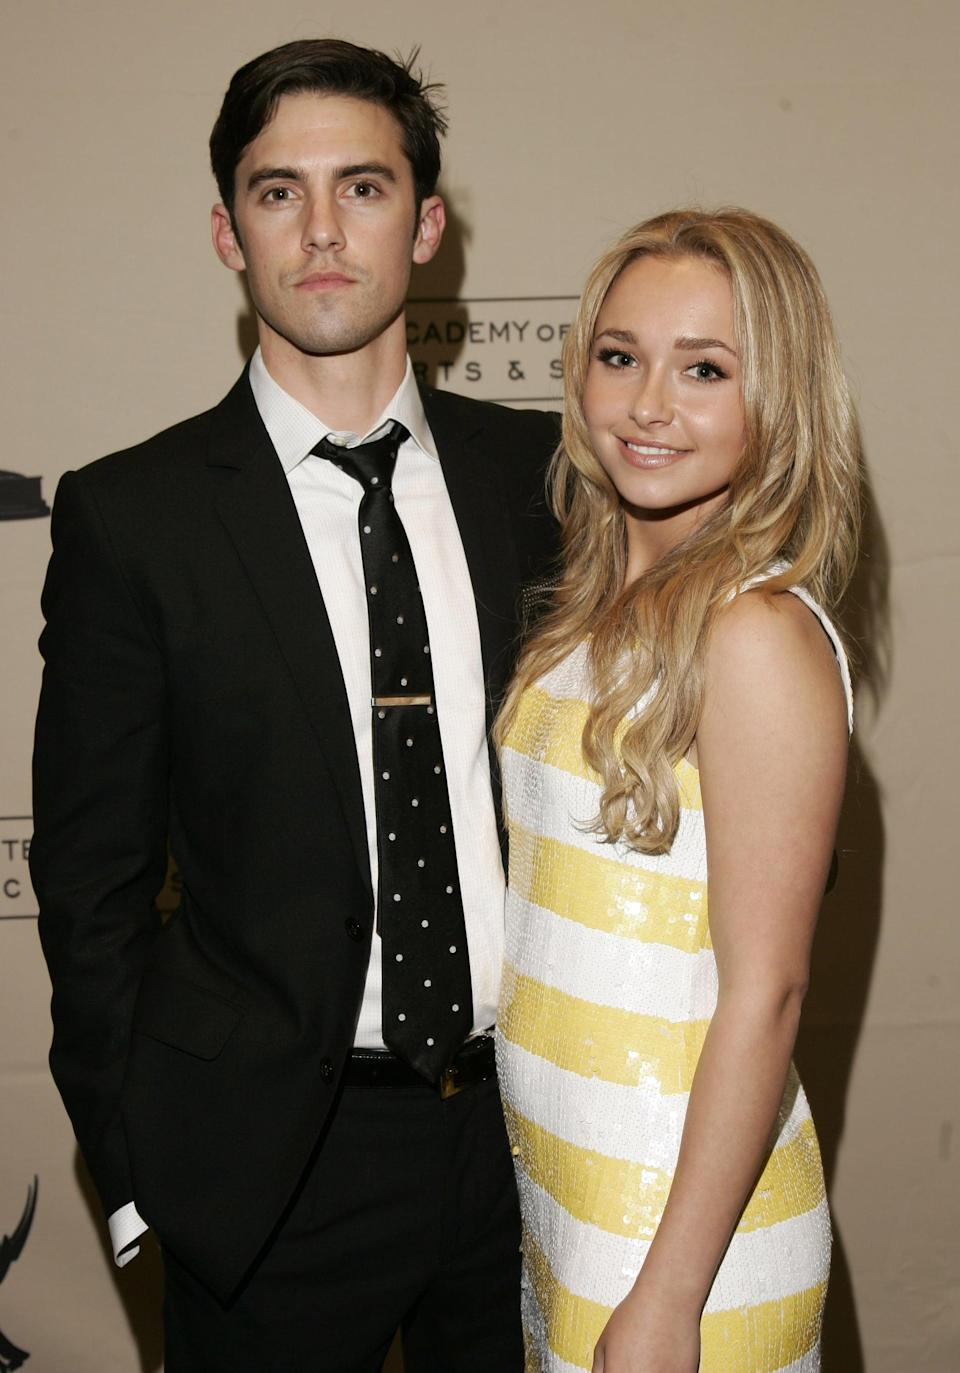 "<p>Hayden and Milo met on the set of <strong>Heroes </strong>in 2016, where they played niece and uncle - though that didn't deter some fans from shipping the pair. The two dated from 2007 to 2009, and they remained on the show until the end of the fourth and final season in 2010. </p> <p>Following the experience, Milo told <strong>Mr. Porter</strong> in September 2017 that <span>he would ""never again"" date a costar</span>. ""There are things that happen to you in your life that shape who you are,"" he added. ""Everything I've been through from jobs to friendships to partnerships - everything has built me to who I am. You learn from it. You learn a better way of doing things. It wasn't until my mid to late twenties that the job wears on you, relationships wear on you. But I wouldn't change a thing. When you get knocked over the head in life, it builds your perspective.""</p>"